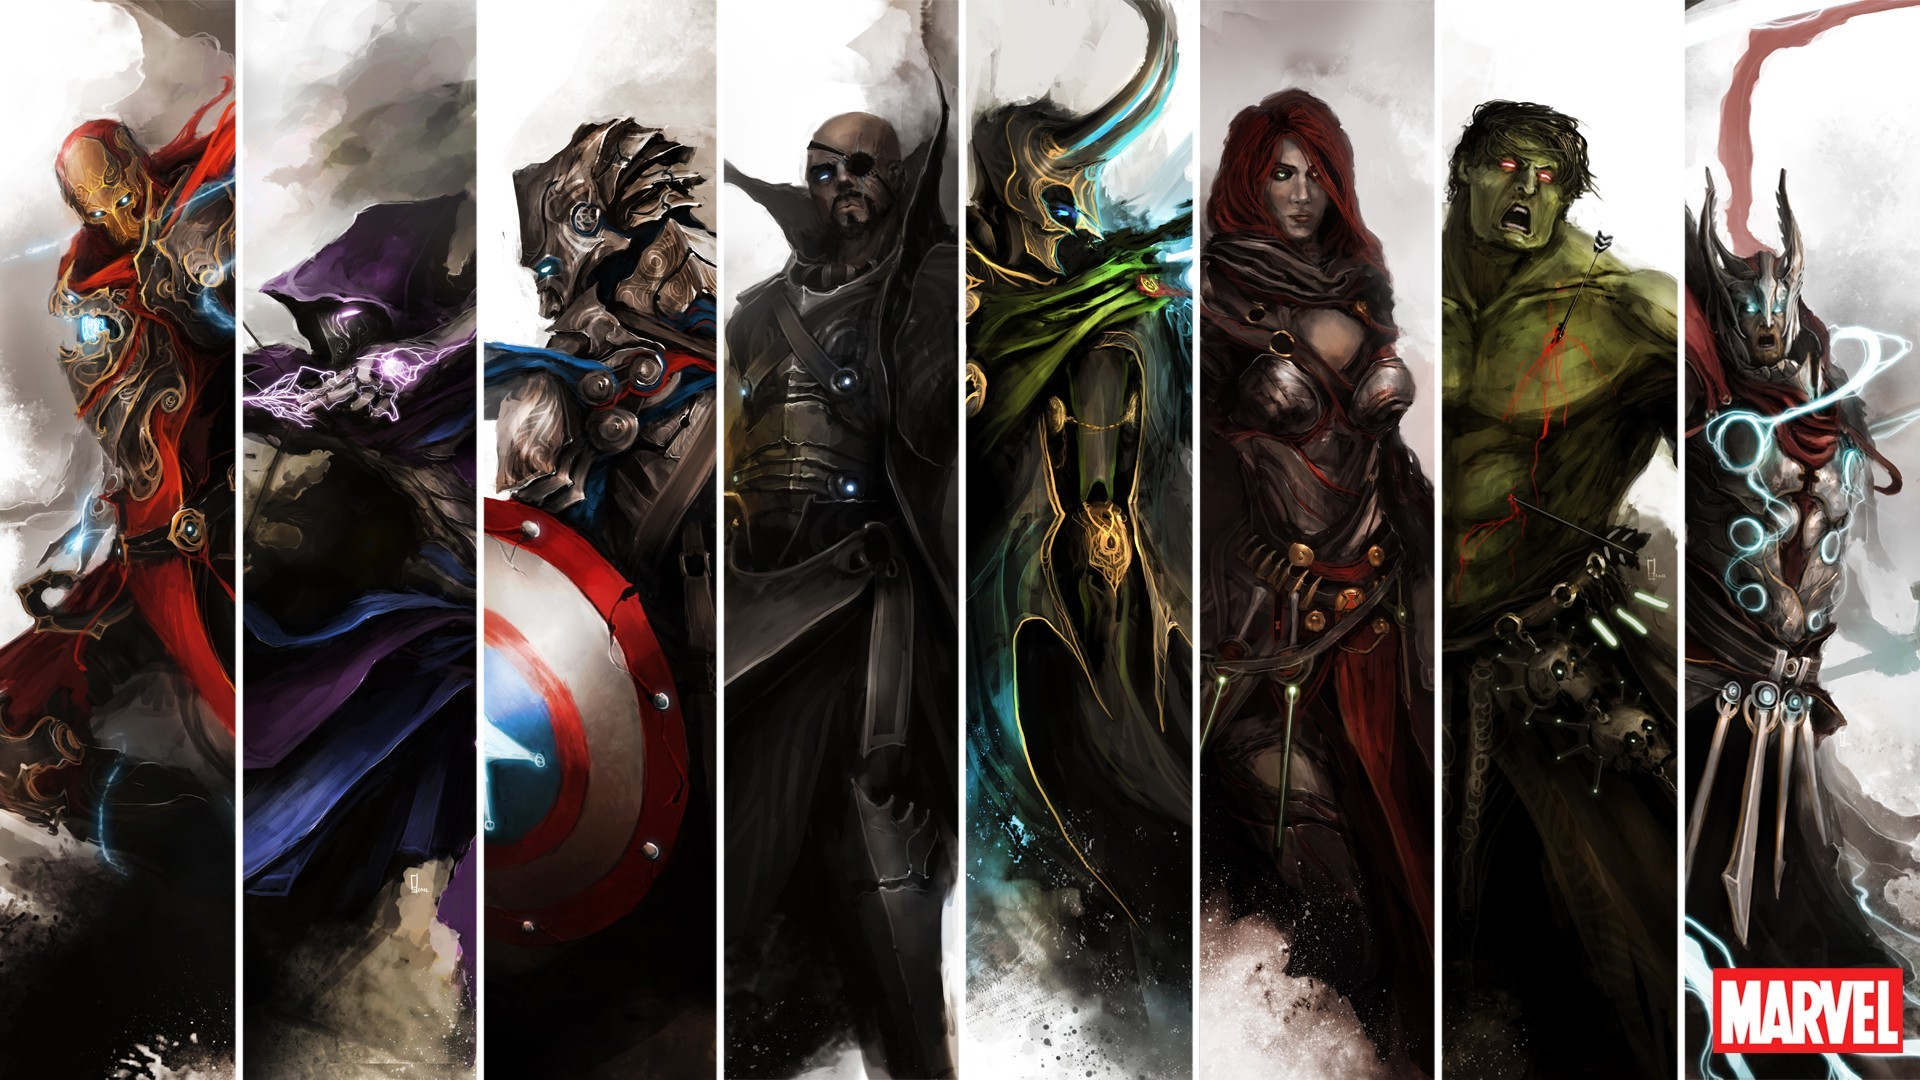 Jual Wallpaper Dinding Motif Bata Paling Indah Untuk Wallpaper Dinding Gambar Avengers A1 Wallpaperz for You